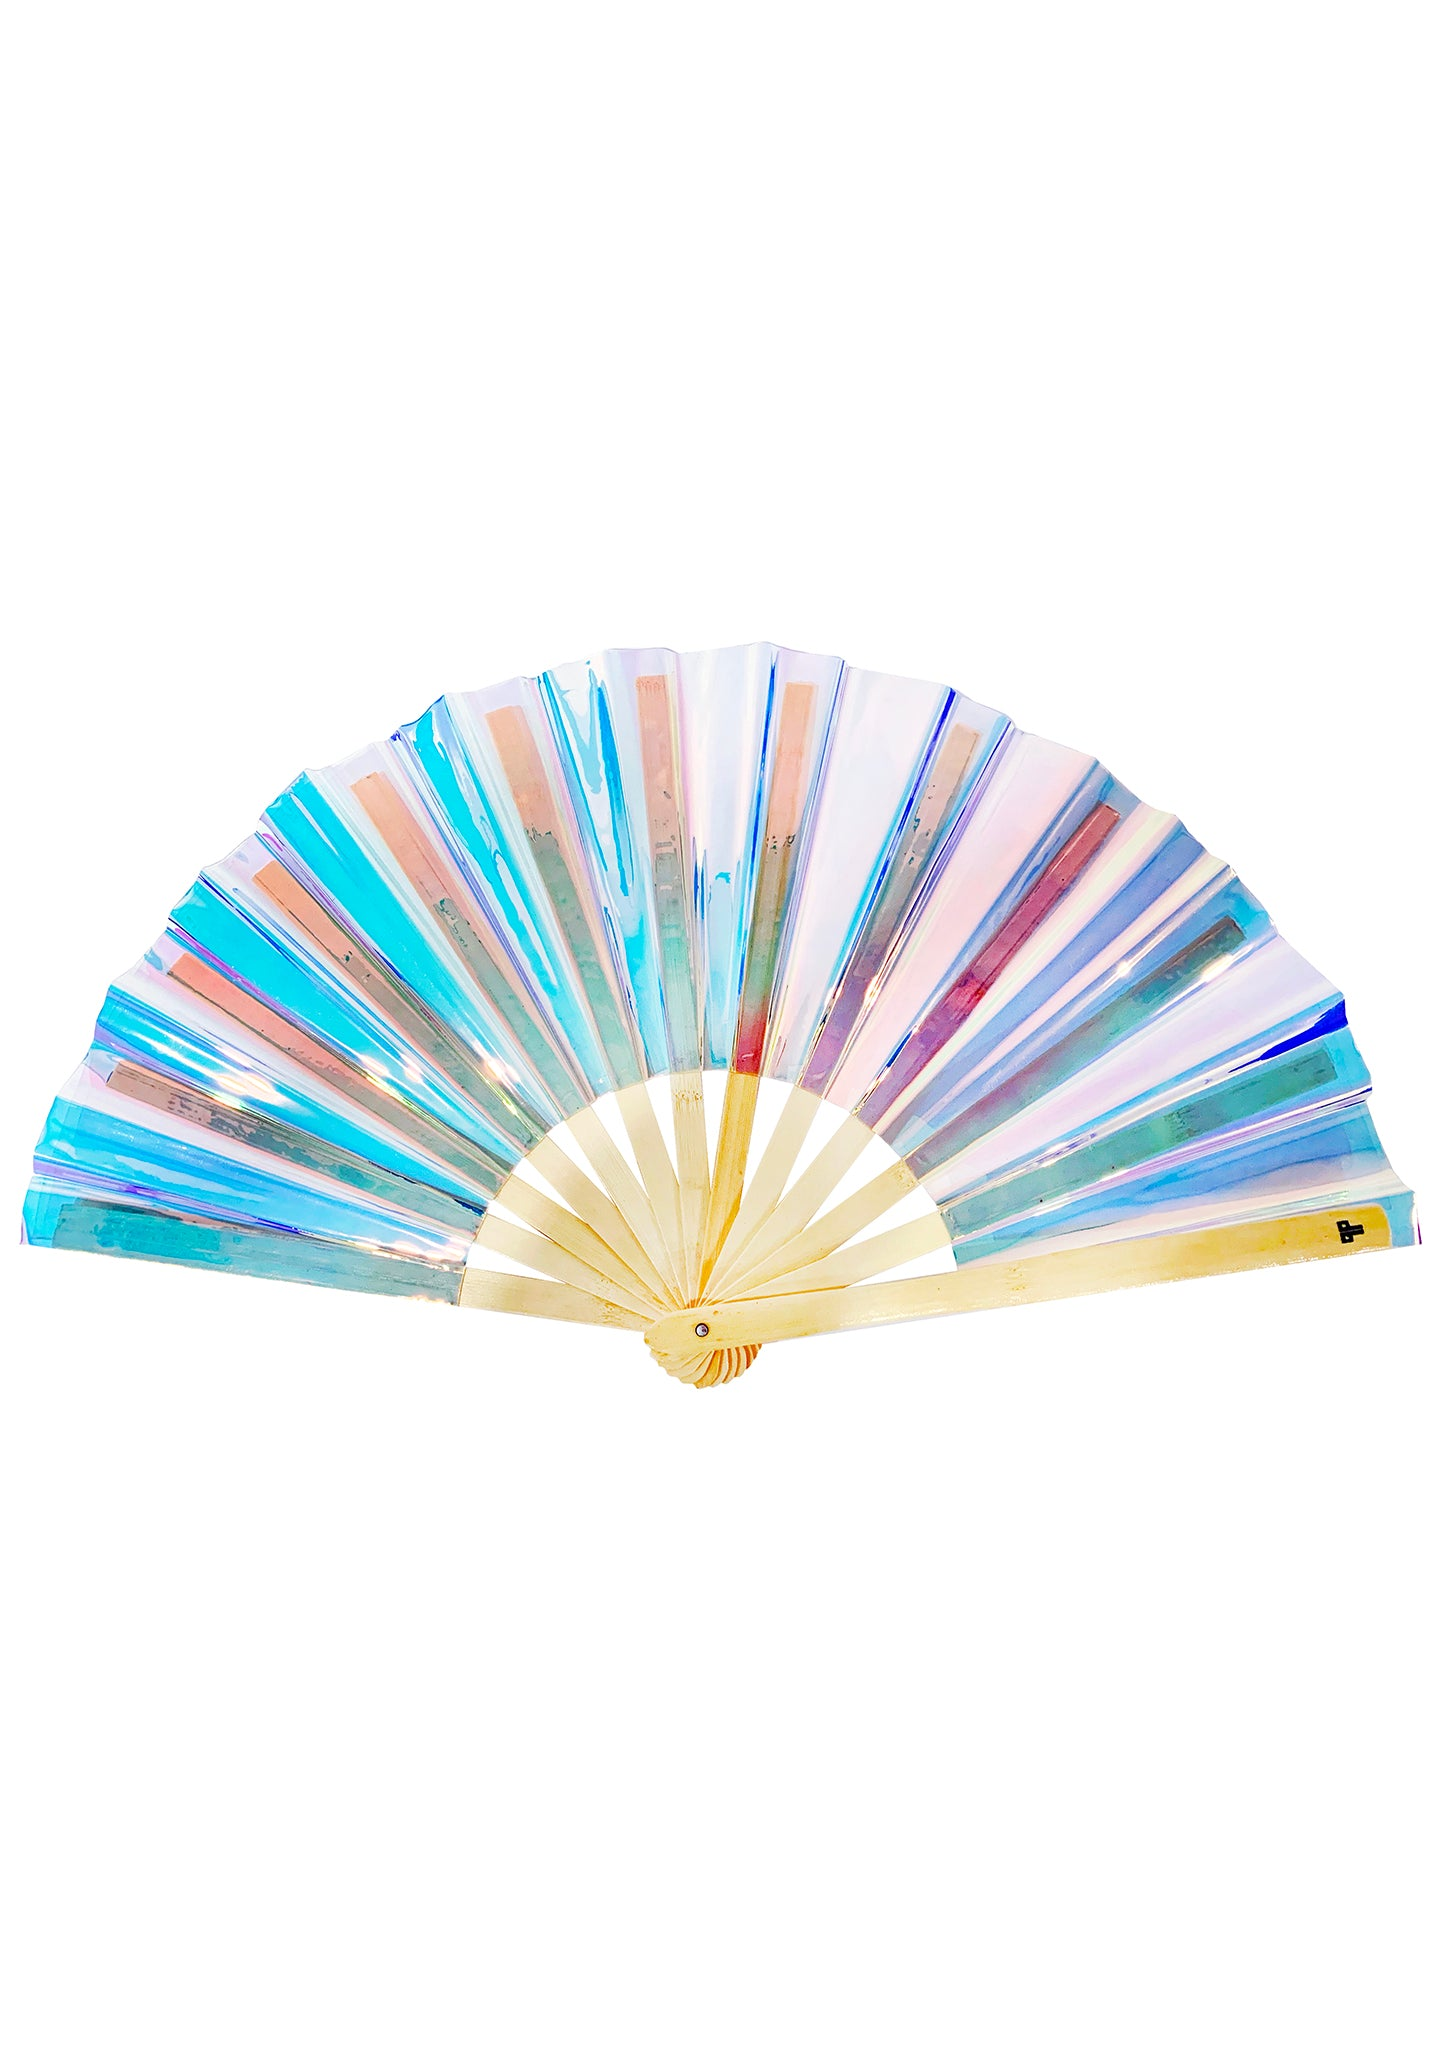 Iridescent Atlantis Fan